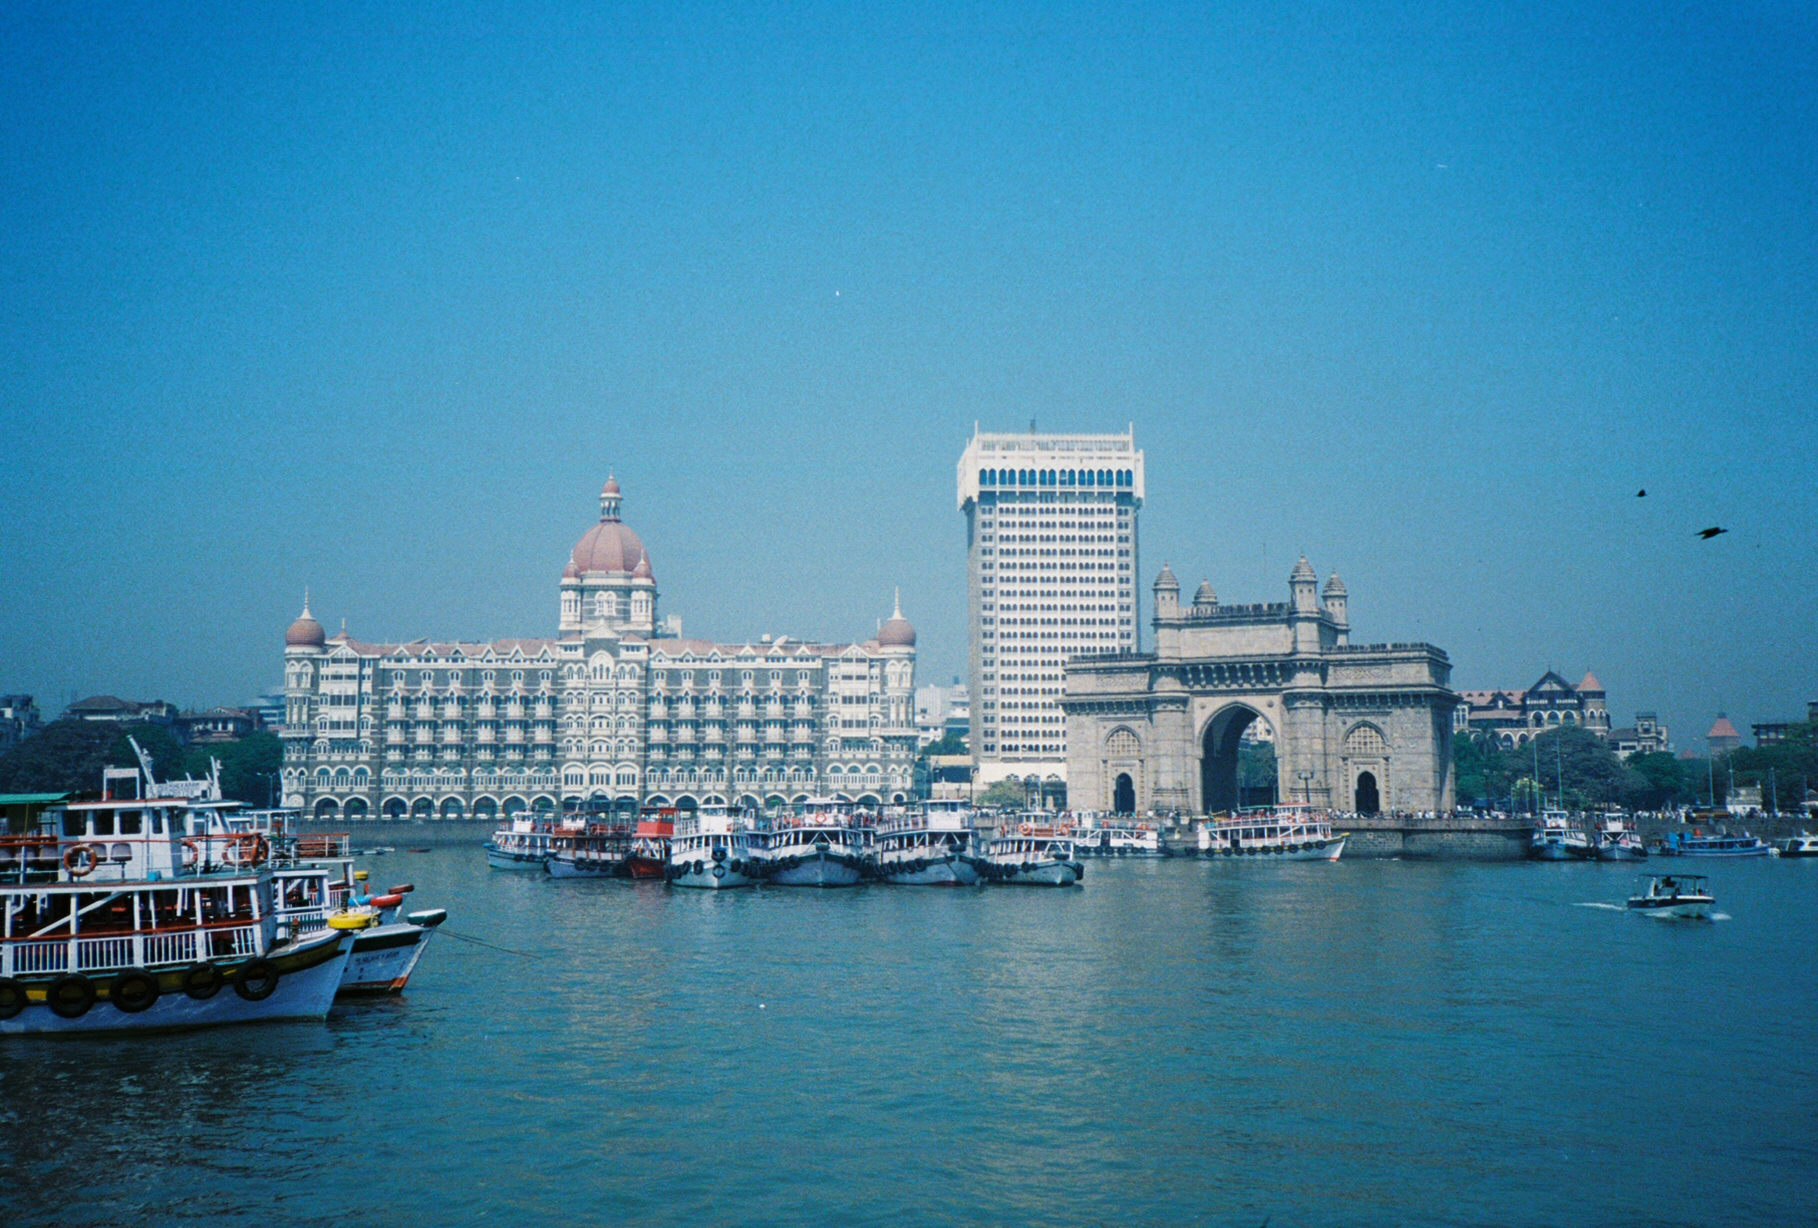 gates_of_india_mumbai_march_2013